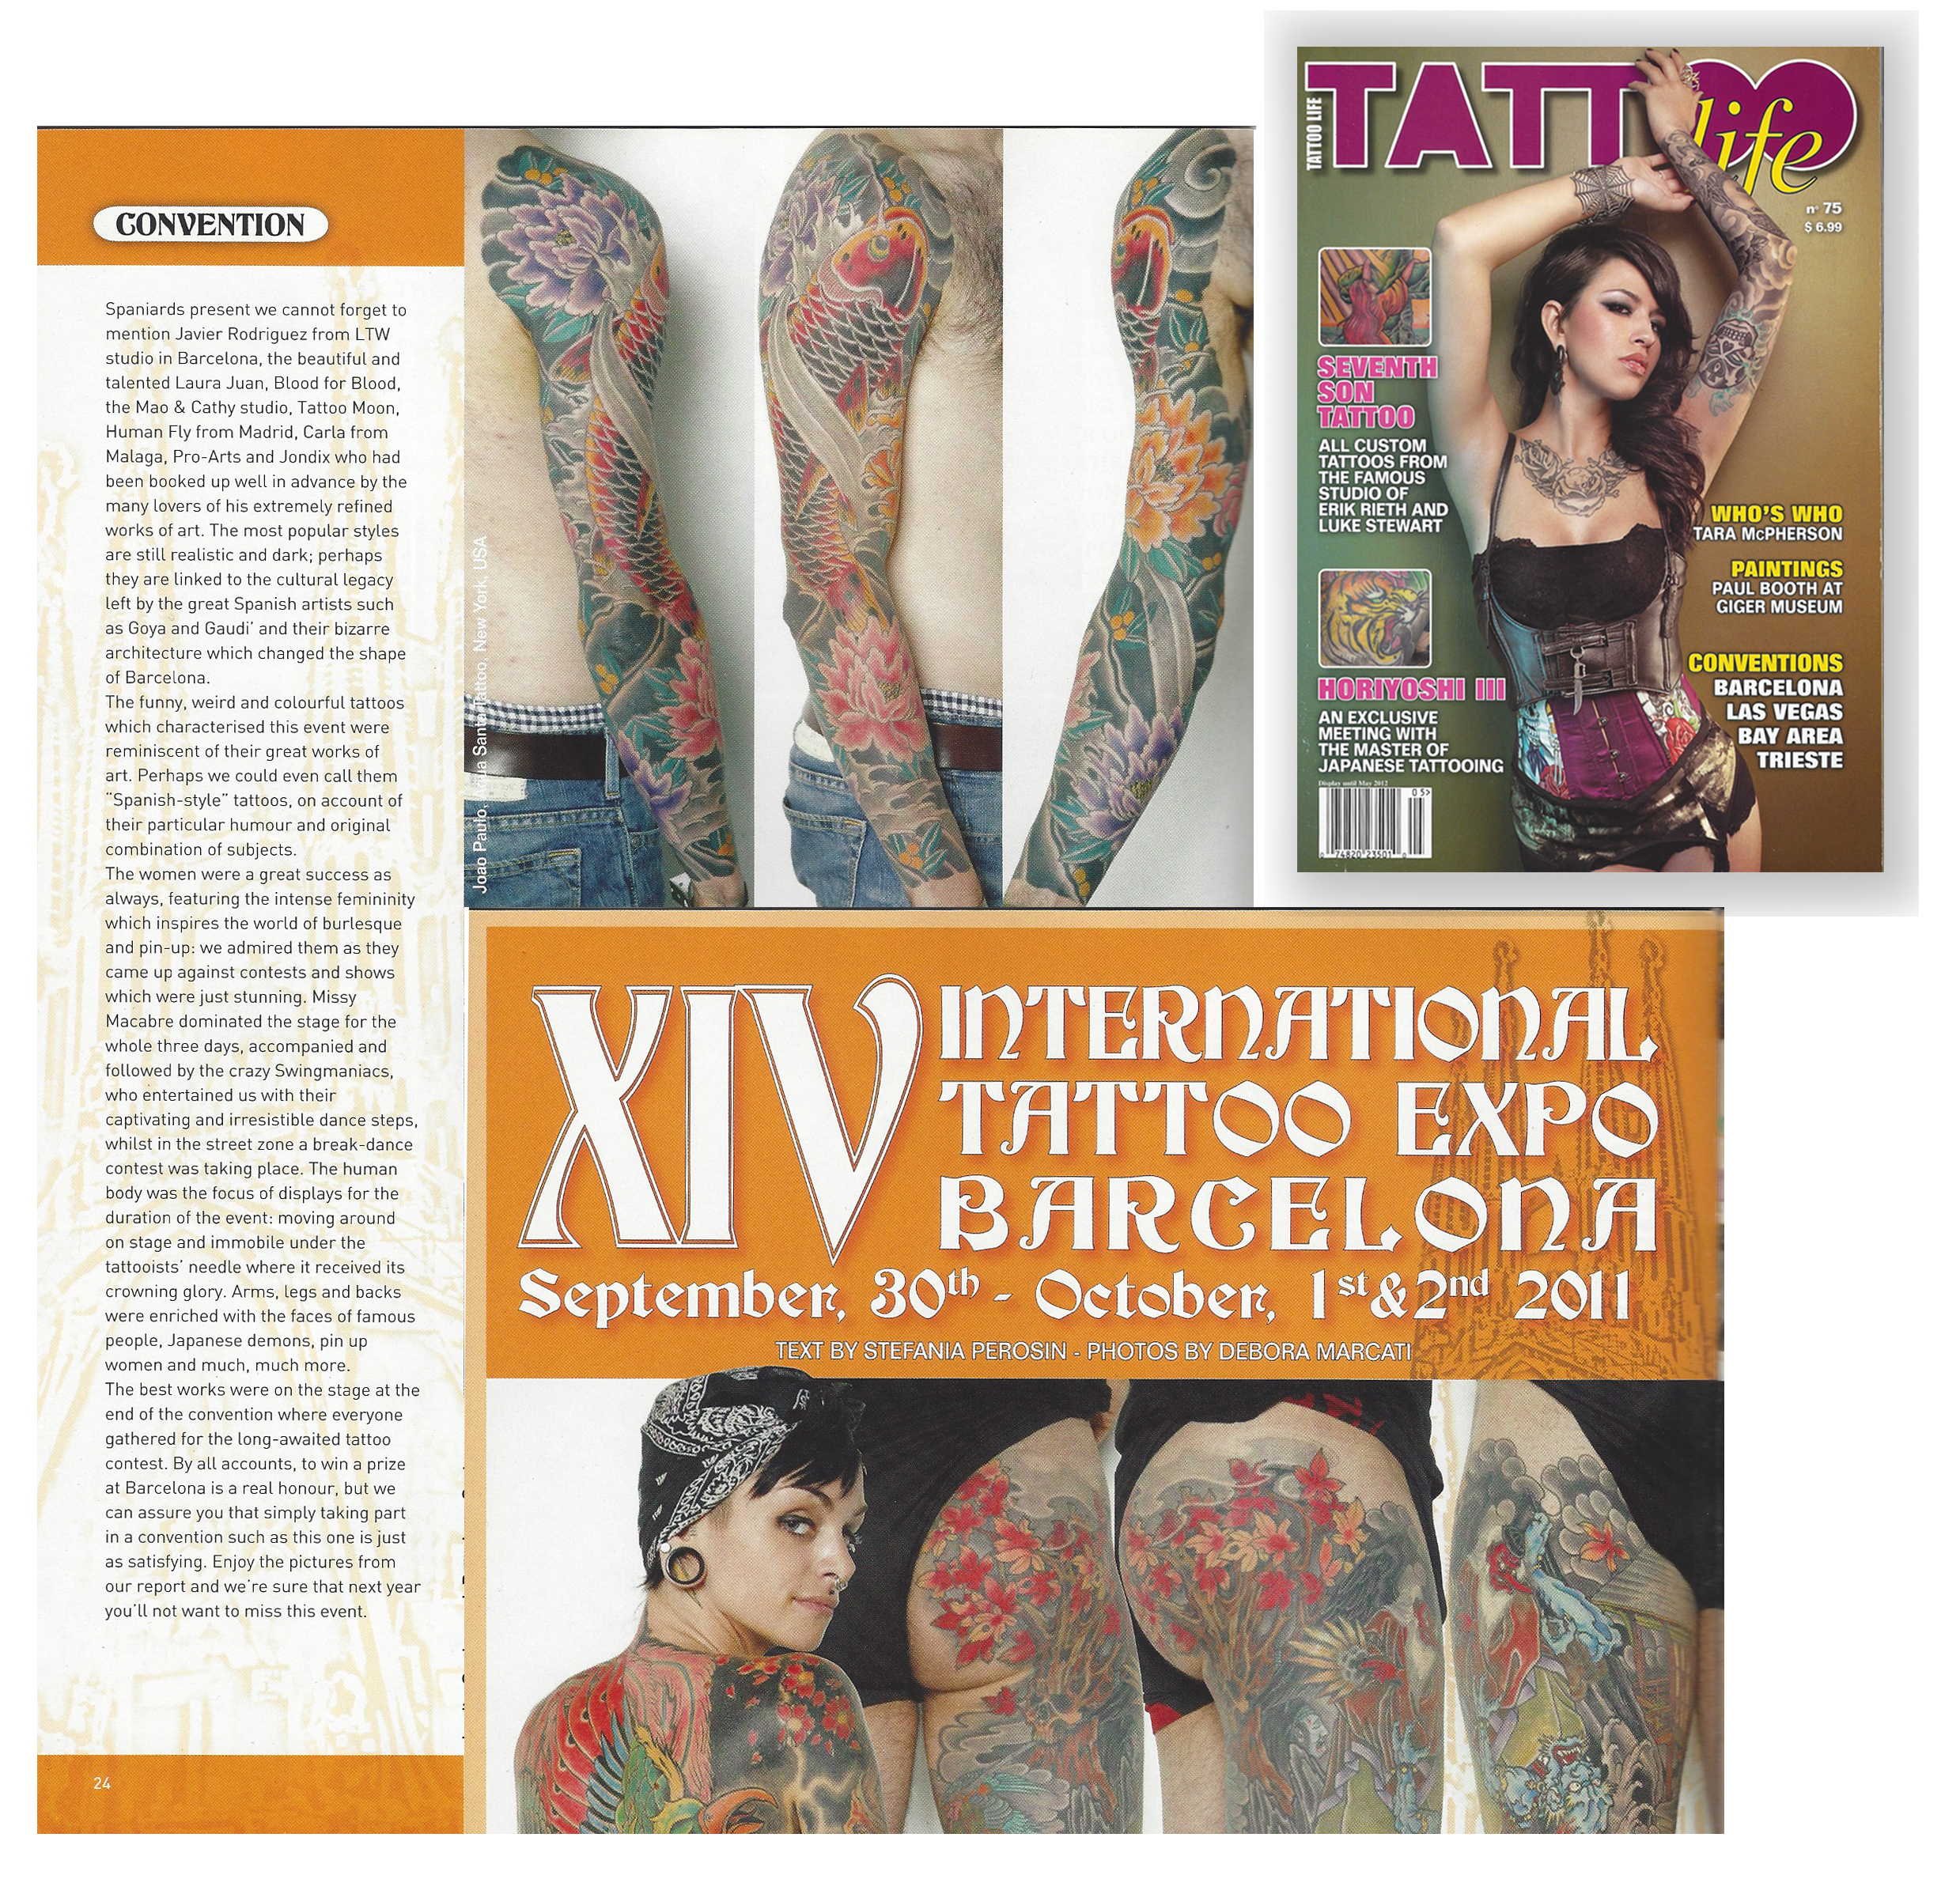 Article on an Italian Tattoo Life Magazine covering the Barcelona Tattoo Convention 2011 which João Paulo Rodrigues won the Best Tattoo done on the Saturday of the show.